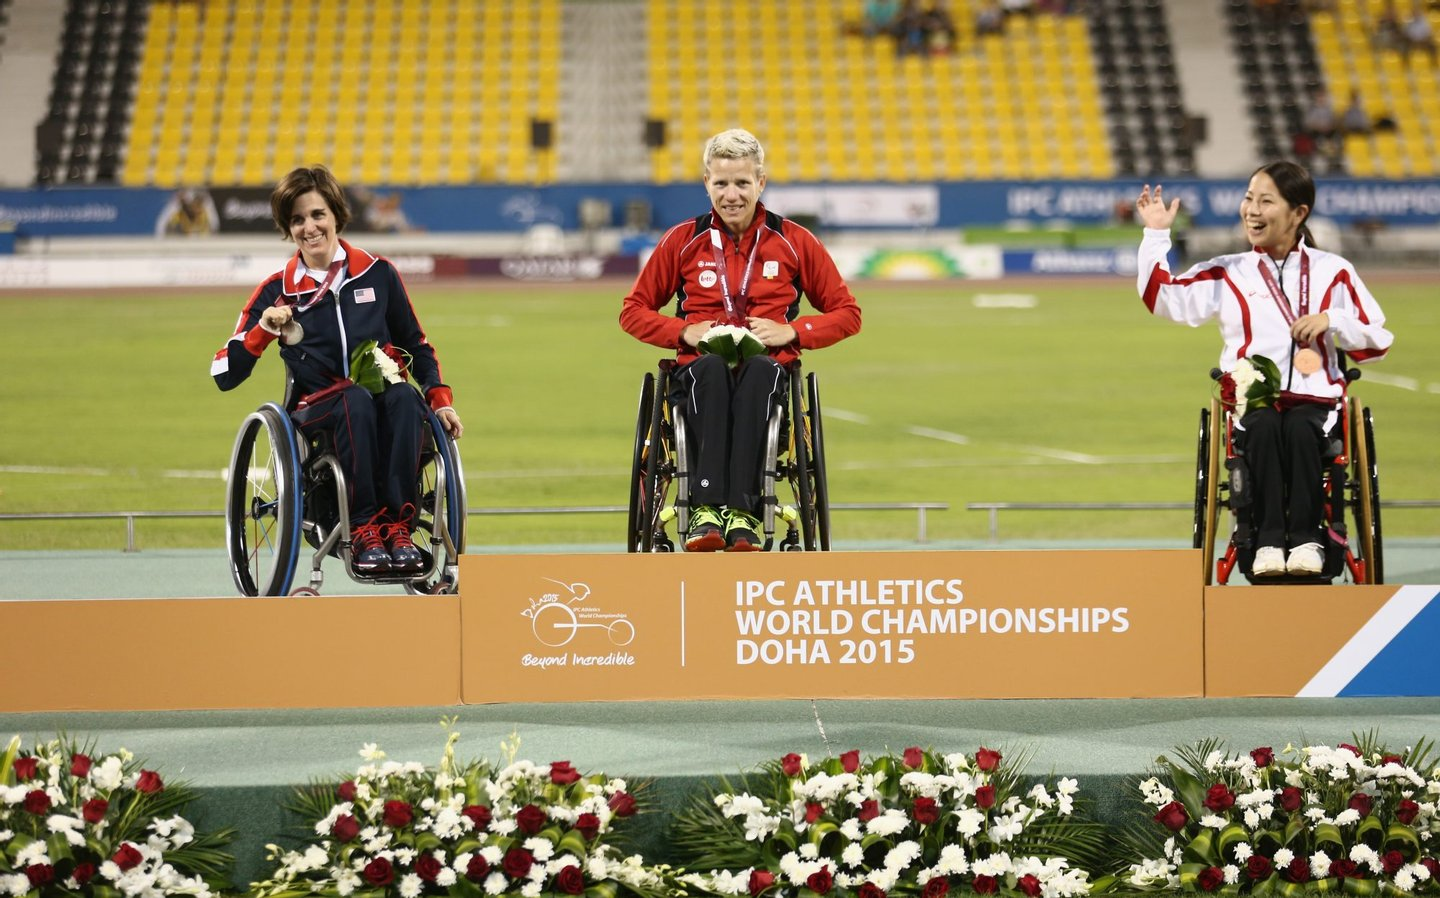 DOHA, QATAR - OCTOBER 26: Marieke Vervoort of Belgium poses with her gold medal, Kerry Morgan of USA silver and Yuka Kiyama of Japan bronze after the women's 100m T52 final during the Evening Session on Day Five of the IPC Athletics World Championships at Suhaim Bin Hamad Stadium on October 26, 2015 in Doha, Qatar. (Photo by Warren Little/Getty Images)